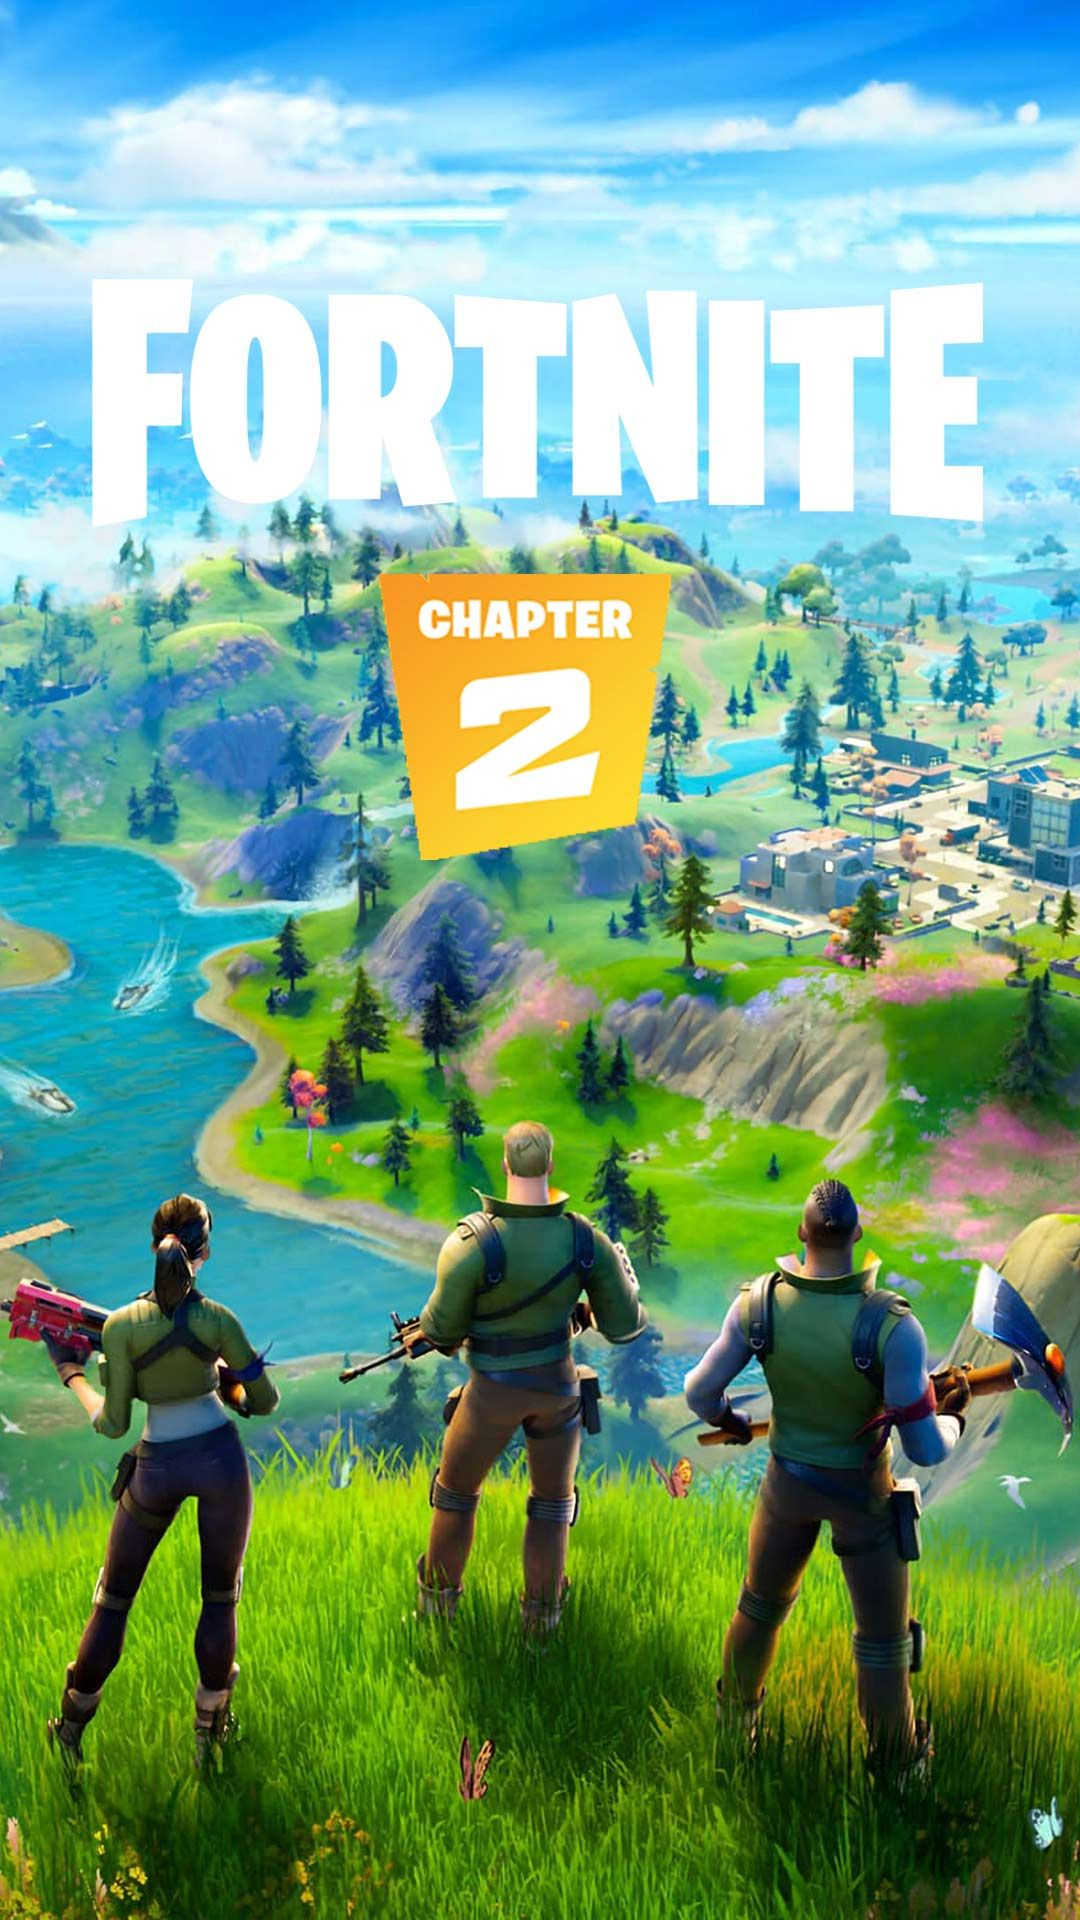 Fortnite Chapter 2 Season 2 Wallpaper Hd Phone Backgrounds For Iphone Android Lock Screen Art Hd Phone Backgrounds Fortnite Phone Backgrounds Fortnite chapter 2 wallpaper hd 4k